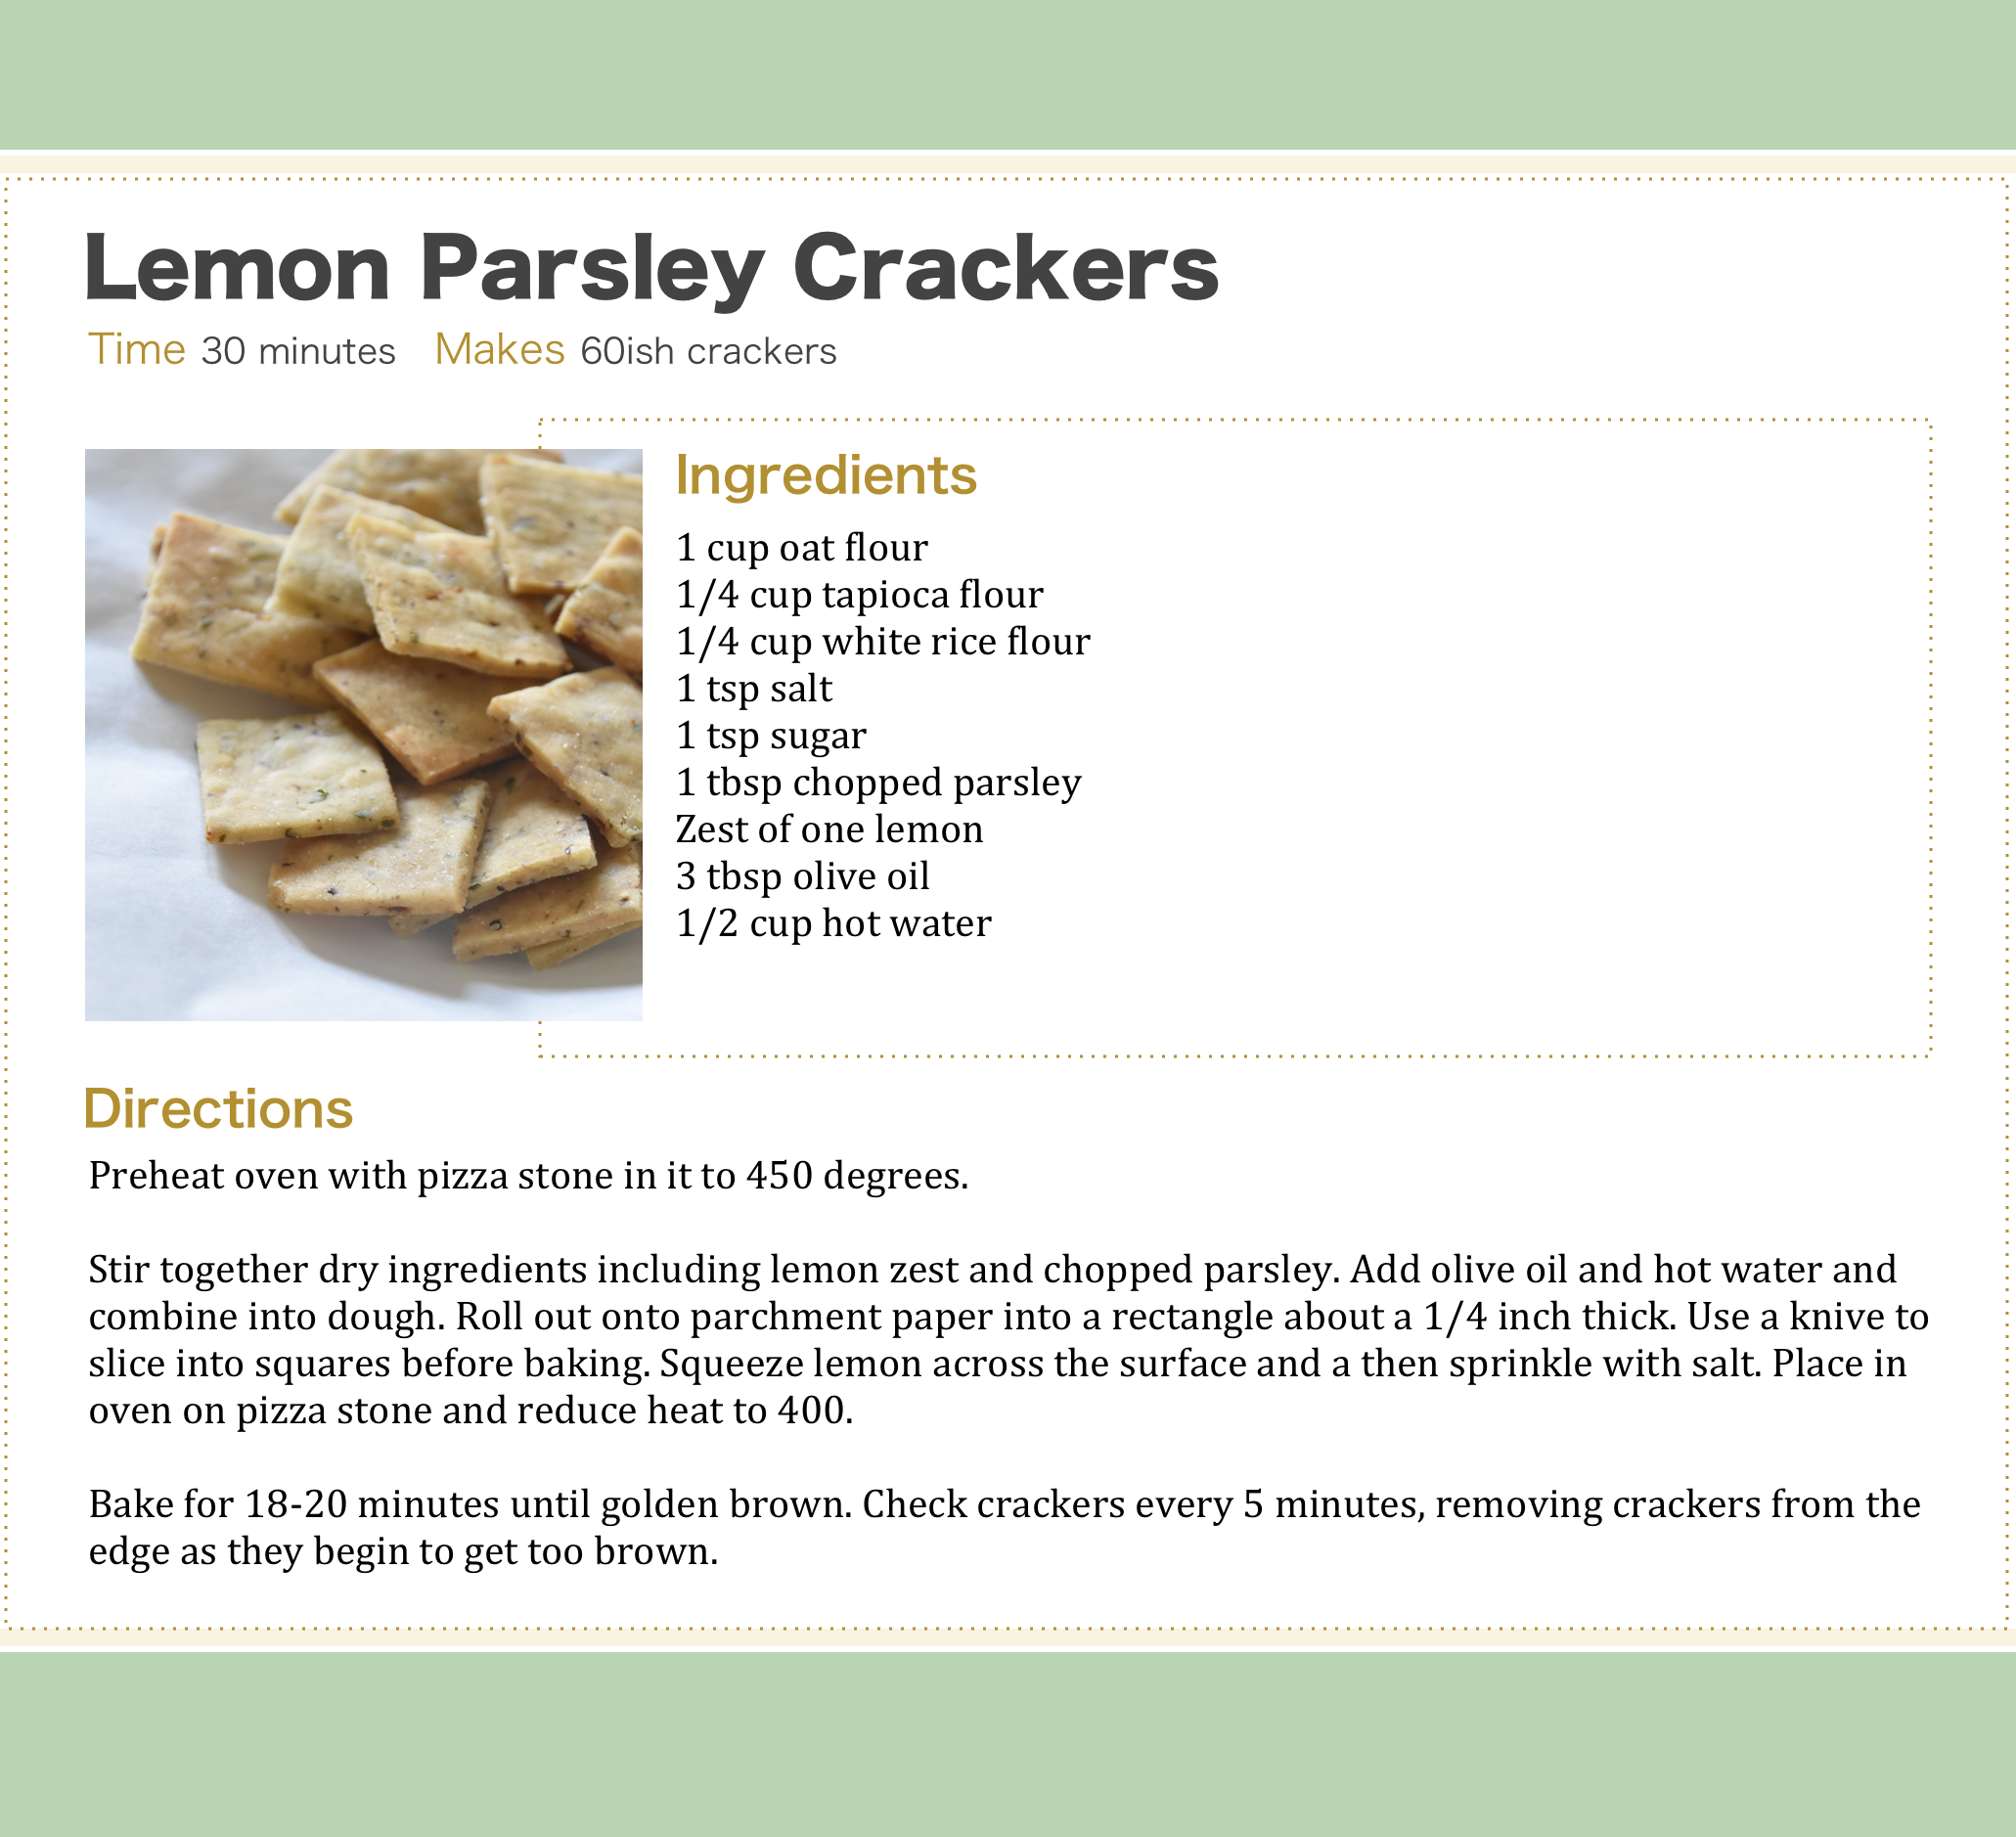 Lemon Parsley Crackers.png